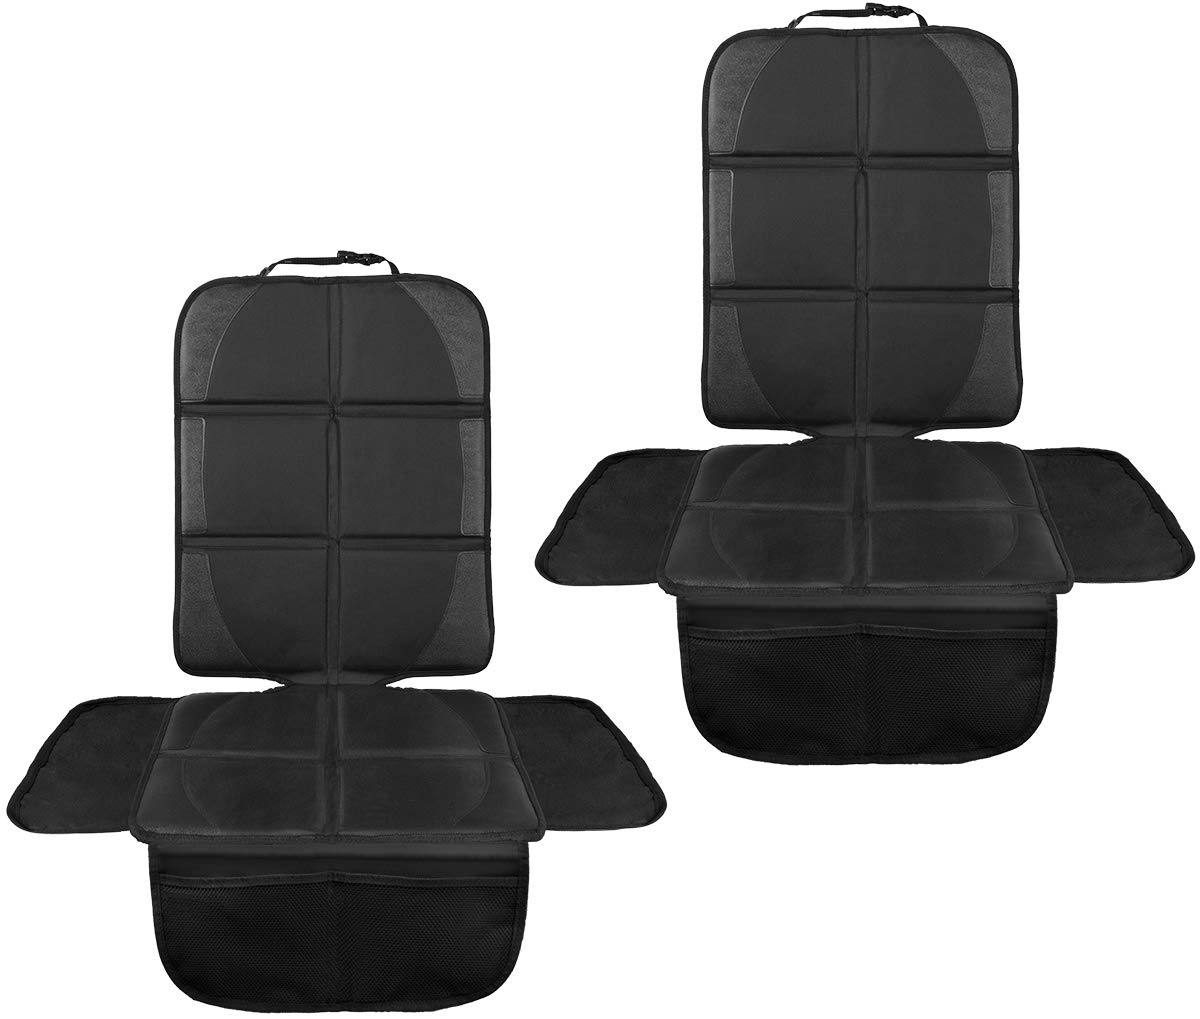 LIONSTRONG - Car Seat Protector for and Seats Child X online shop Baby Regular store